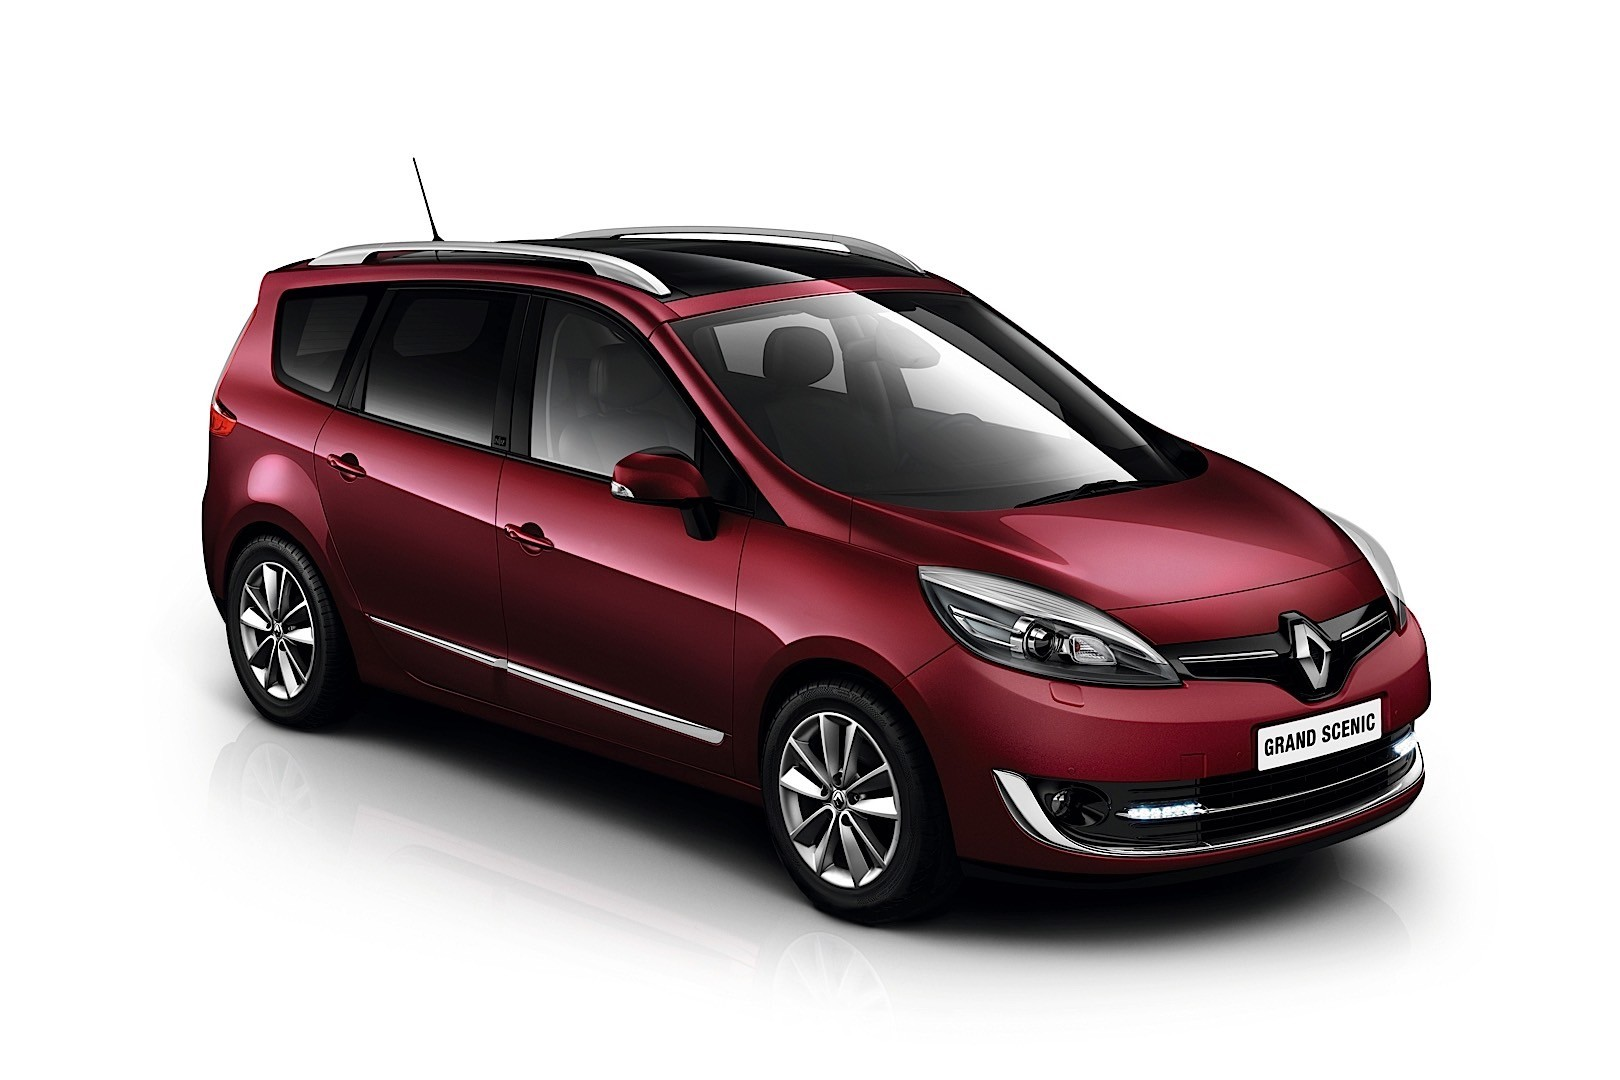 renault scenic specs photos 2013 2014 2015 2016 autoevolution. Black Bedroom Furniture Sets. Home Design Ideas